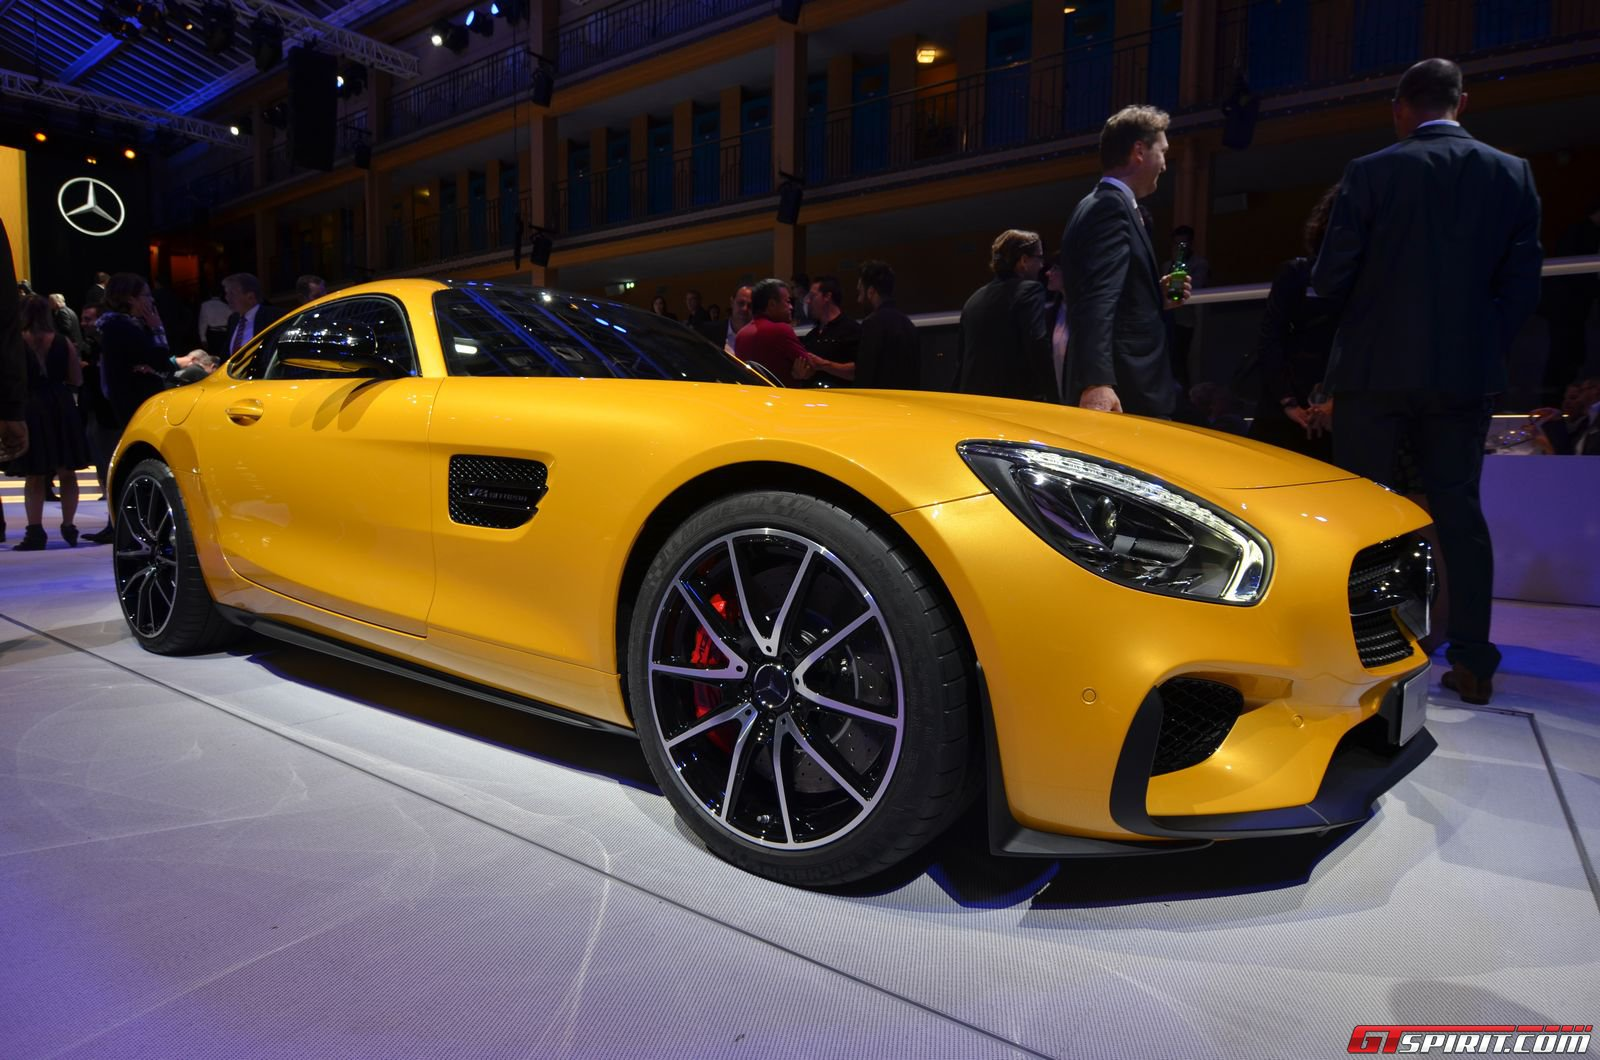 paris 2014 2015 mercedes amg gt edition 1 gtspirit. Black Bedroom Furniture Sets. Home Design Ideas